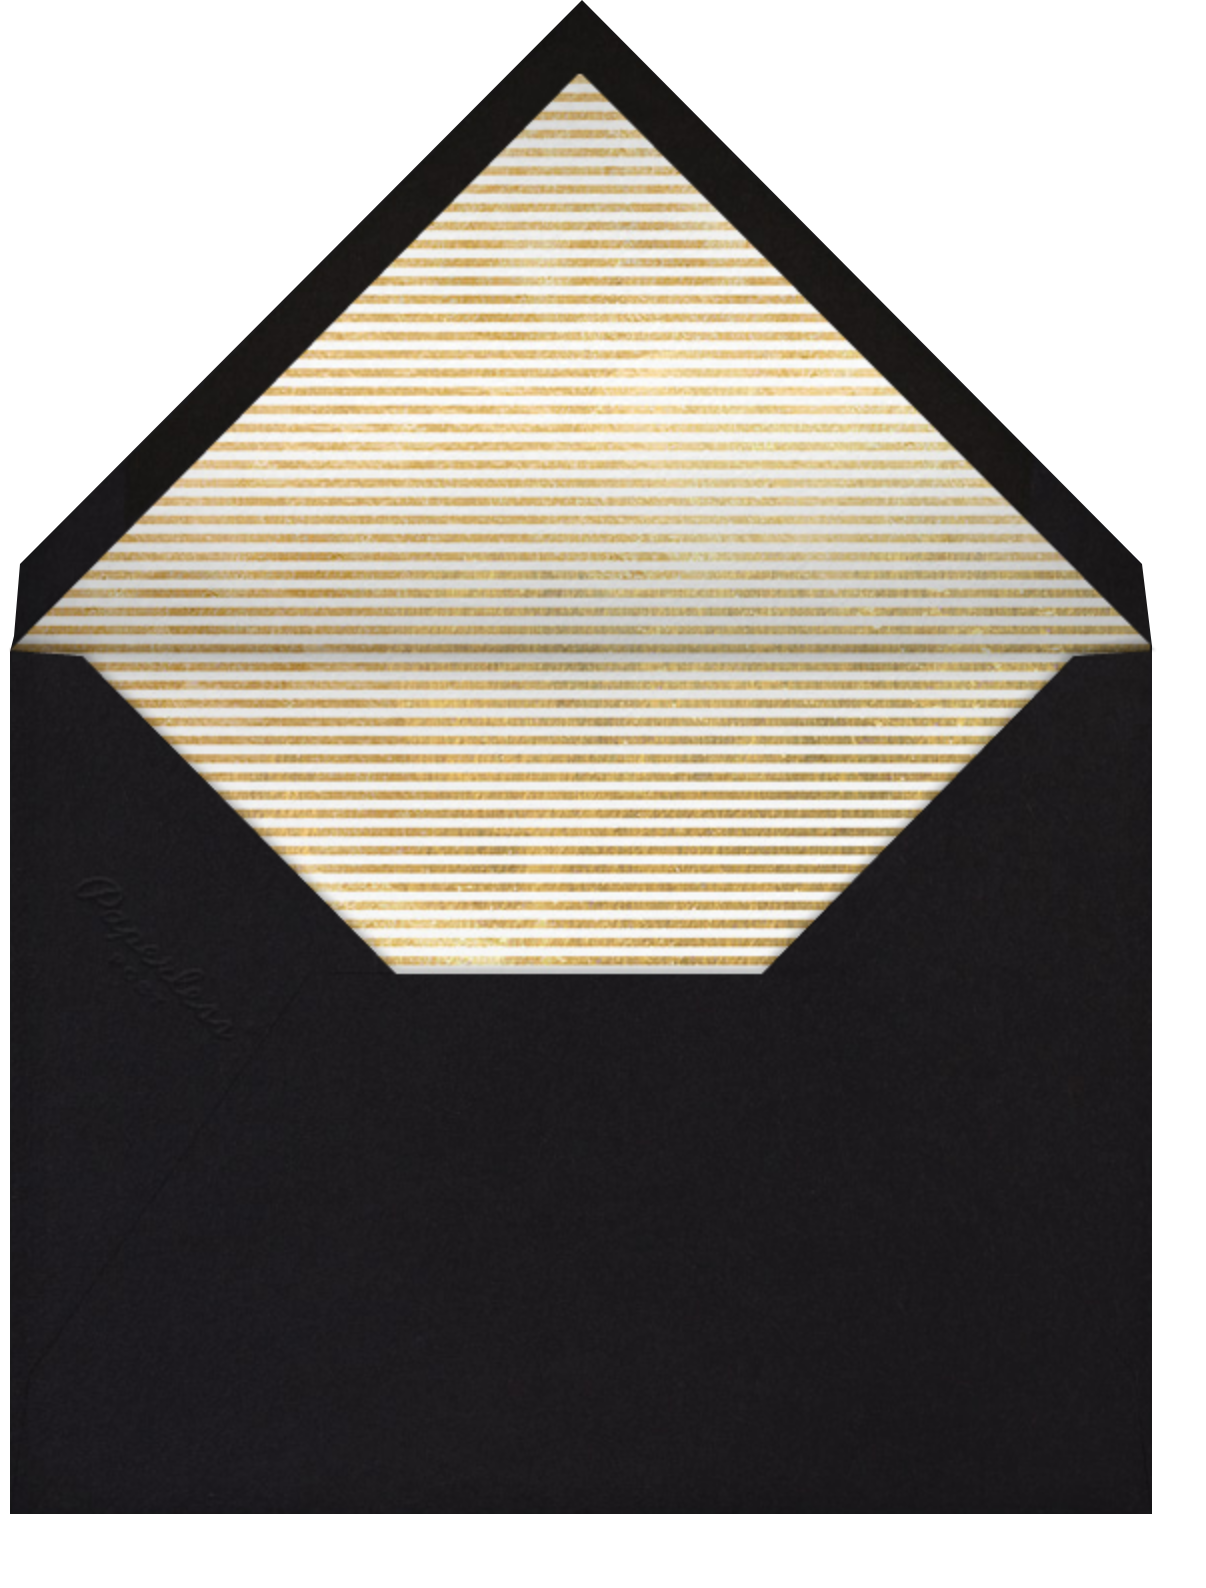 New Years Sky - Sugar Paper - New Year's Eve - envelope back